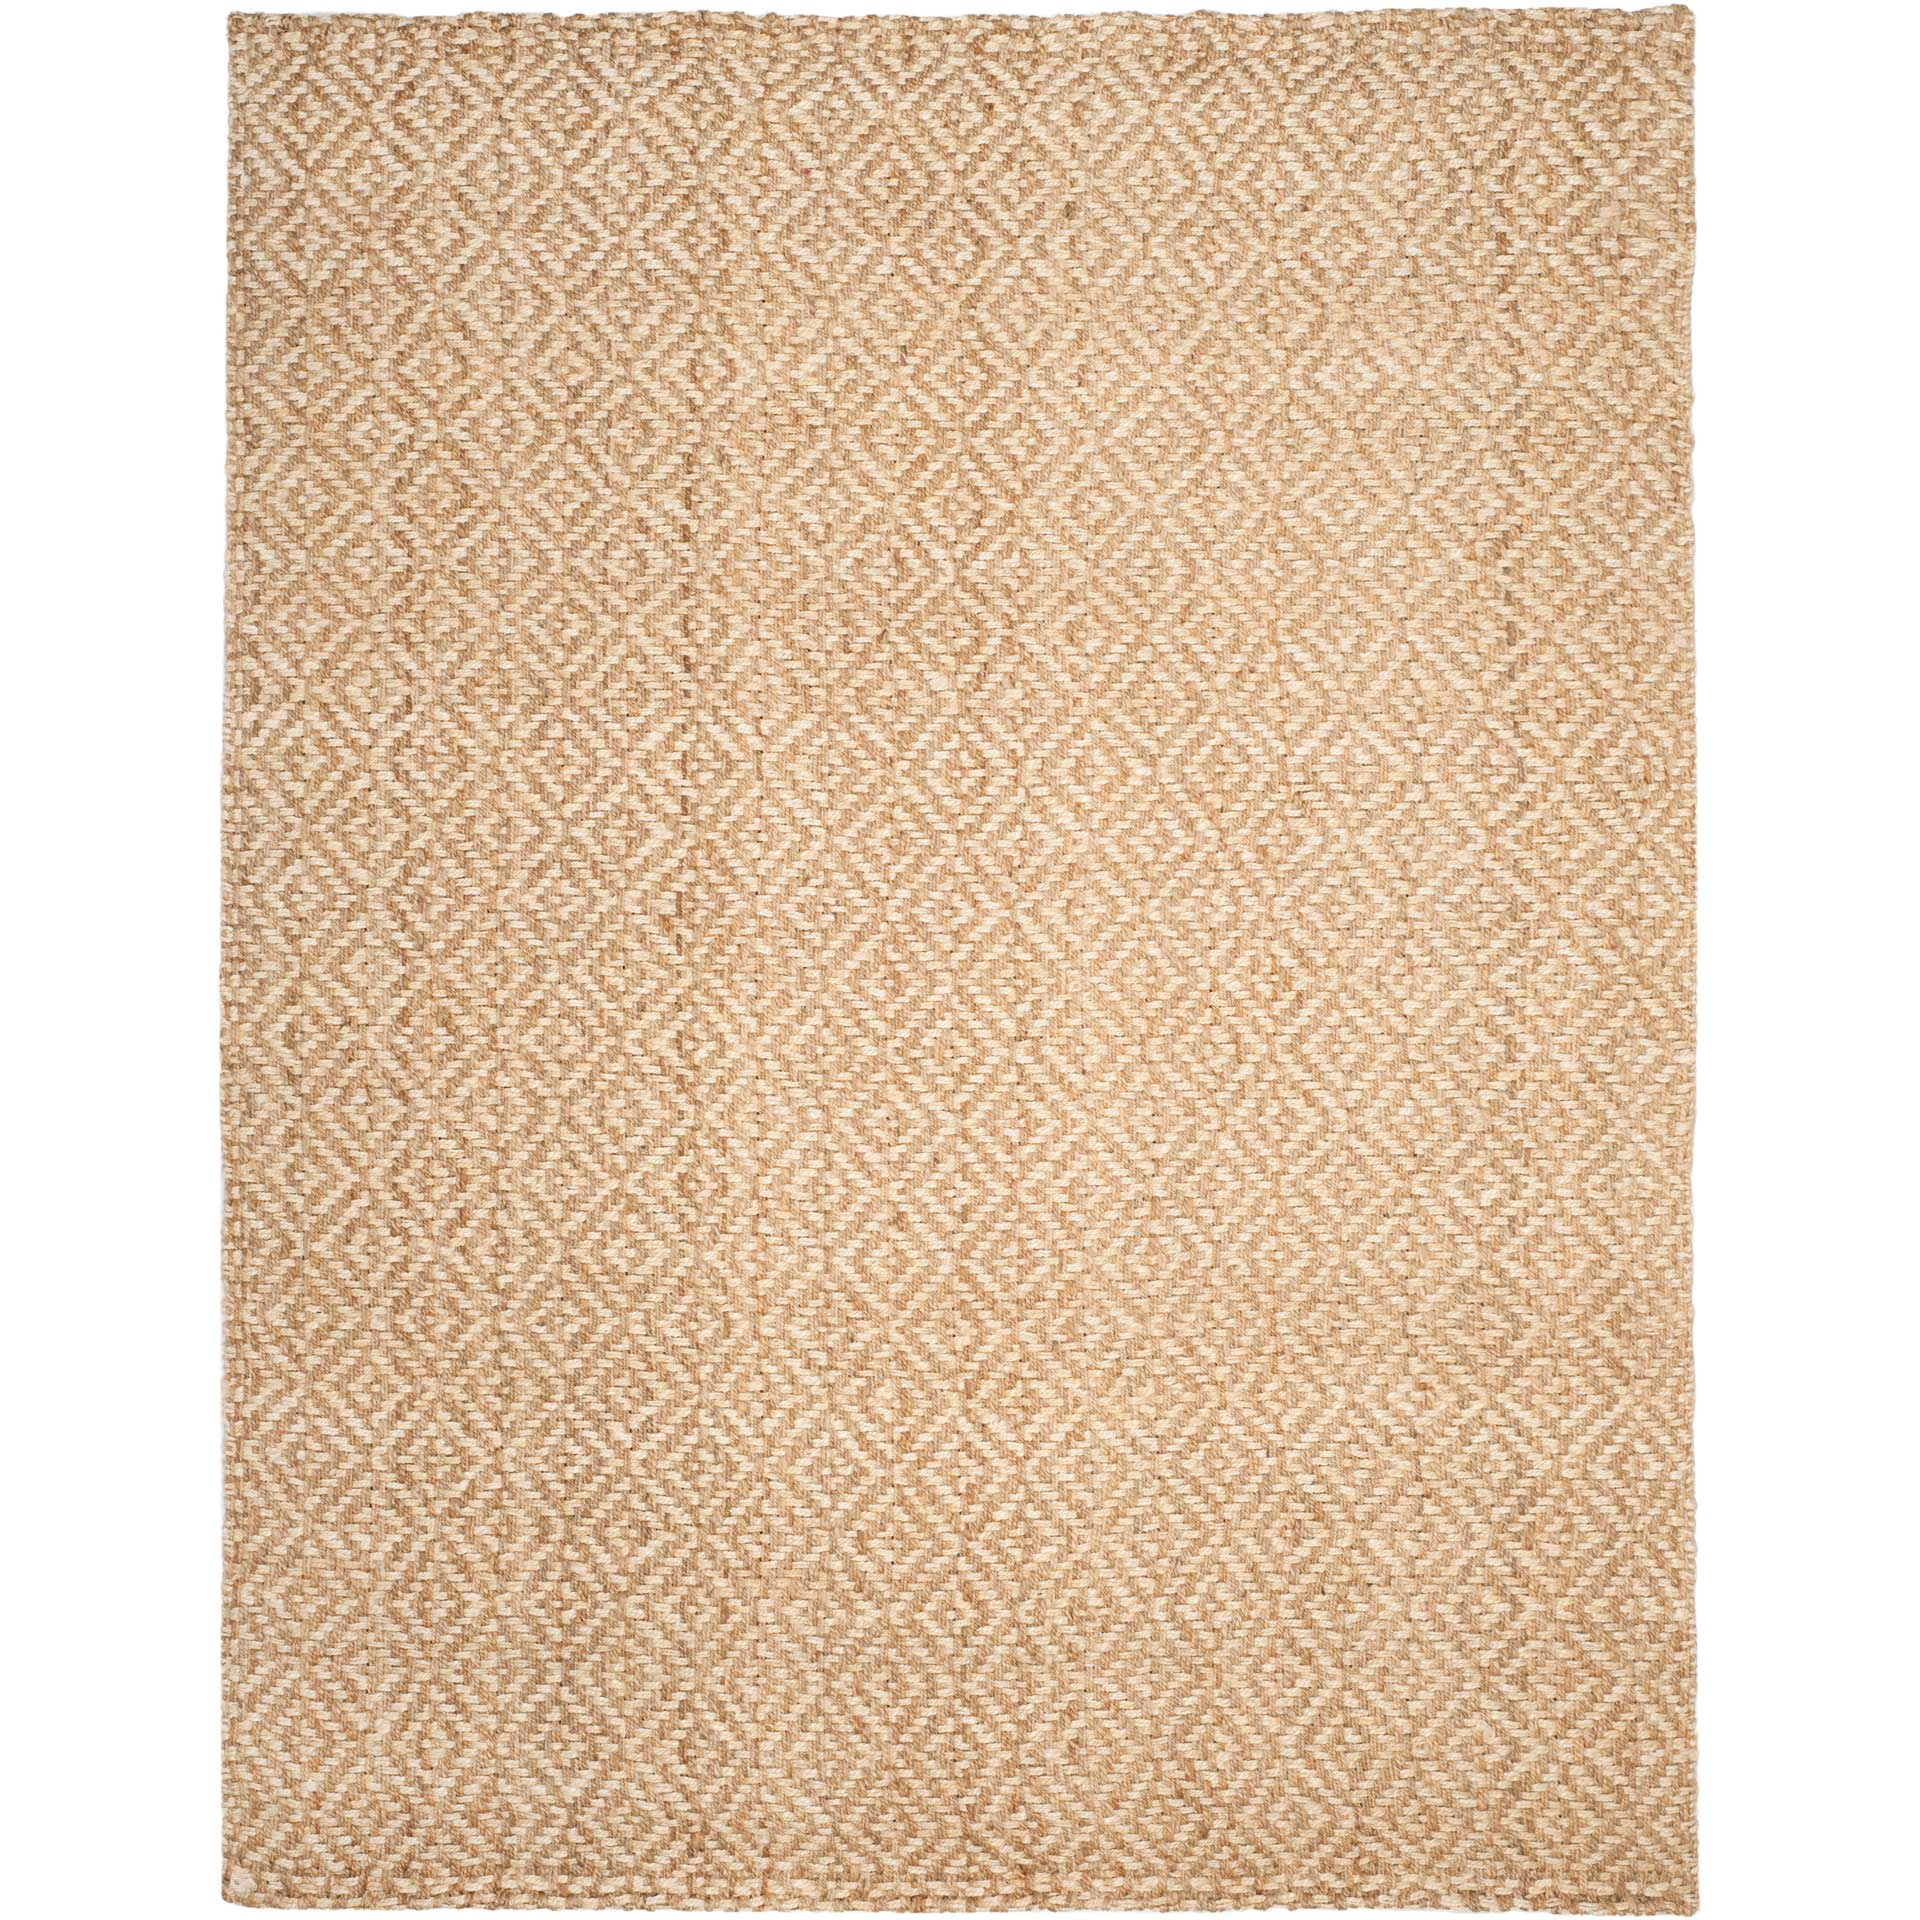 Natural Fiber Diamond Ivory/Natural Area Rug